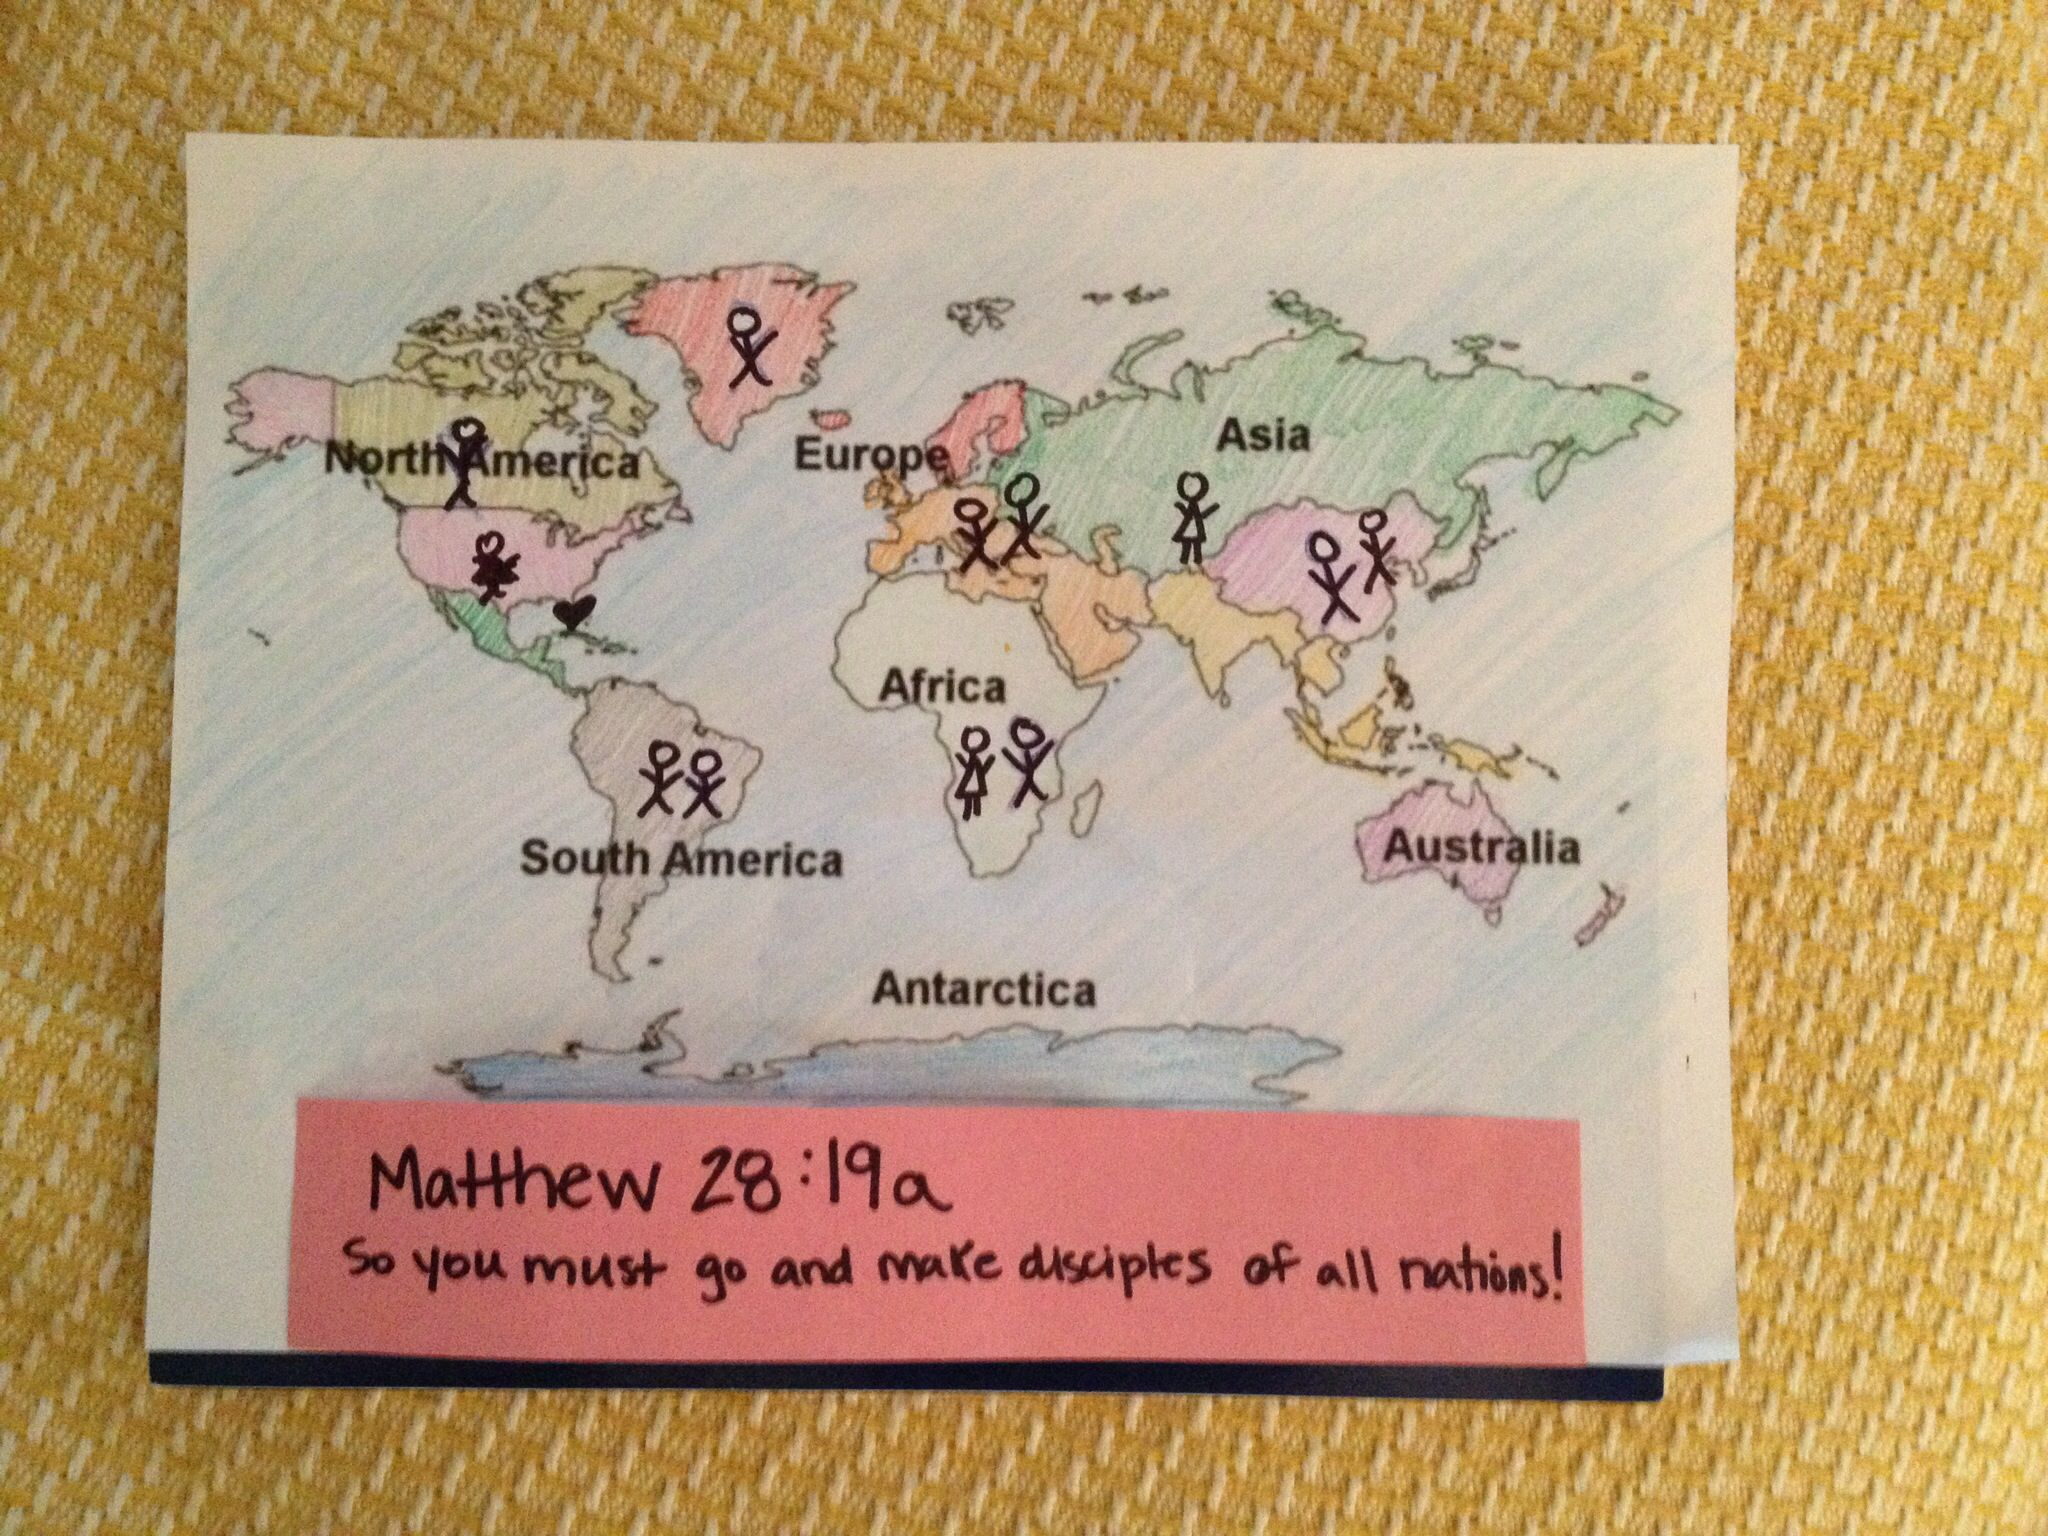 Sunday School Craft On The Great Commission.